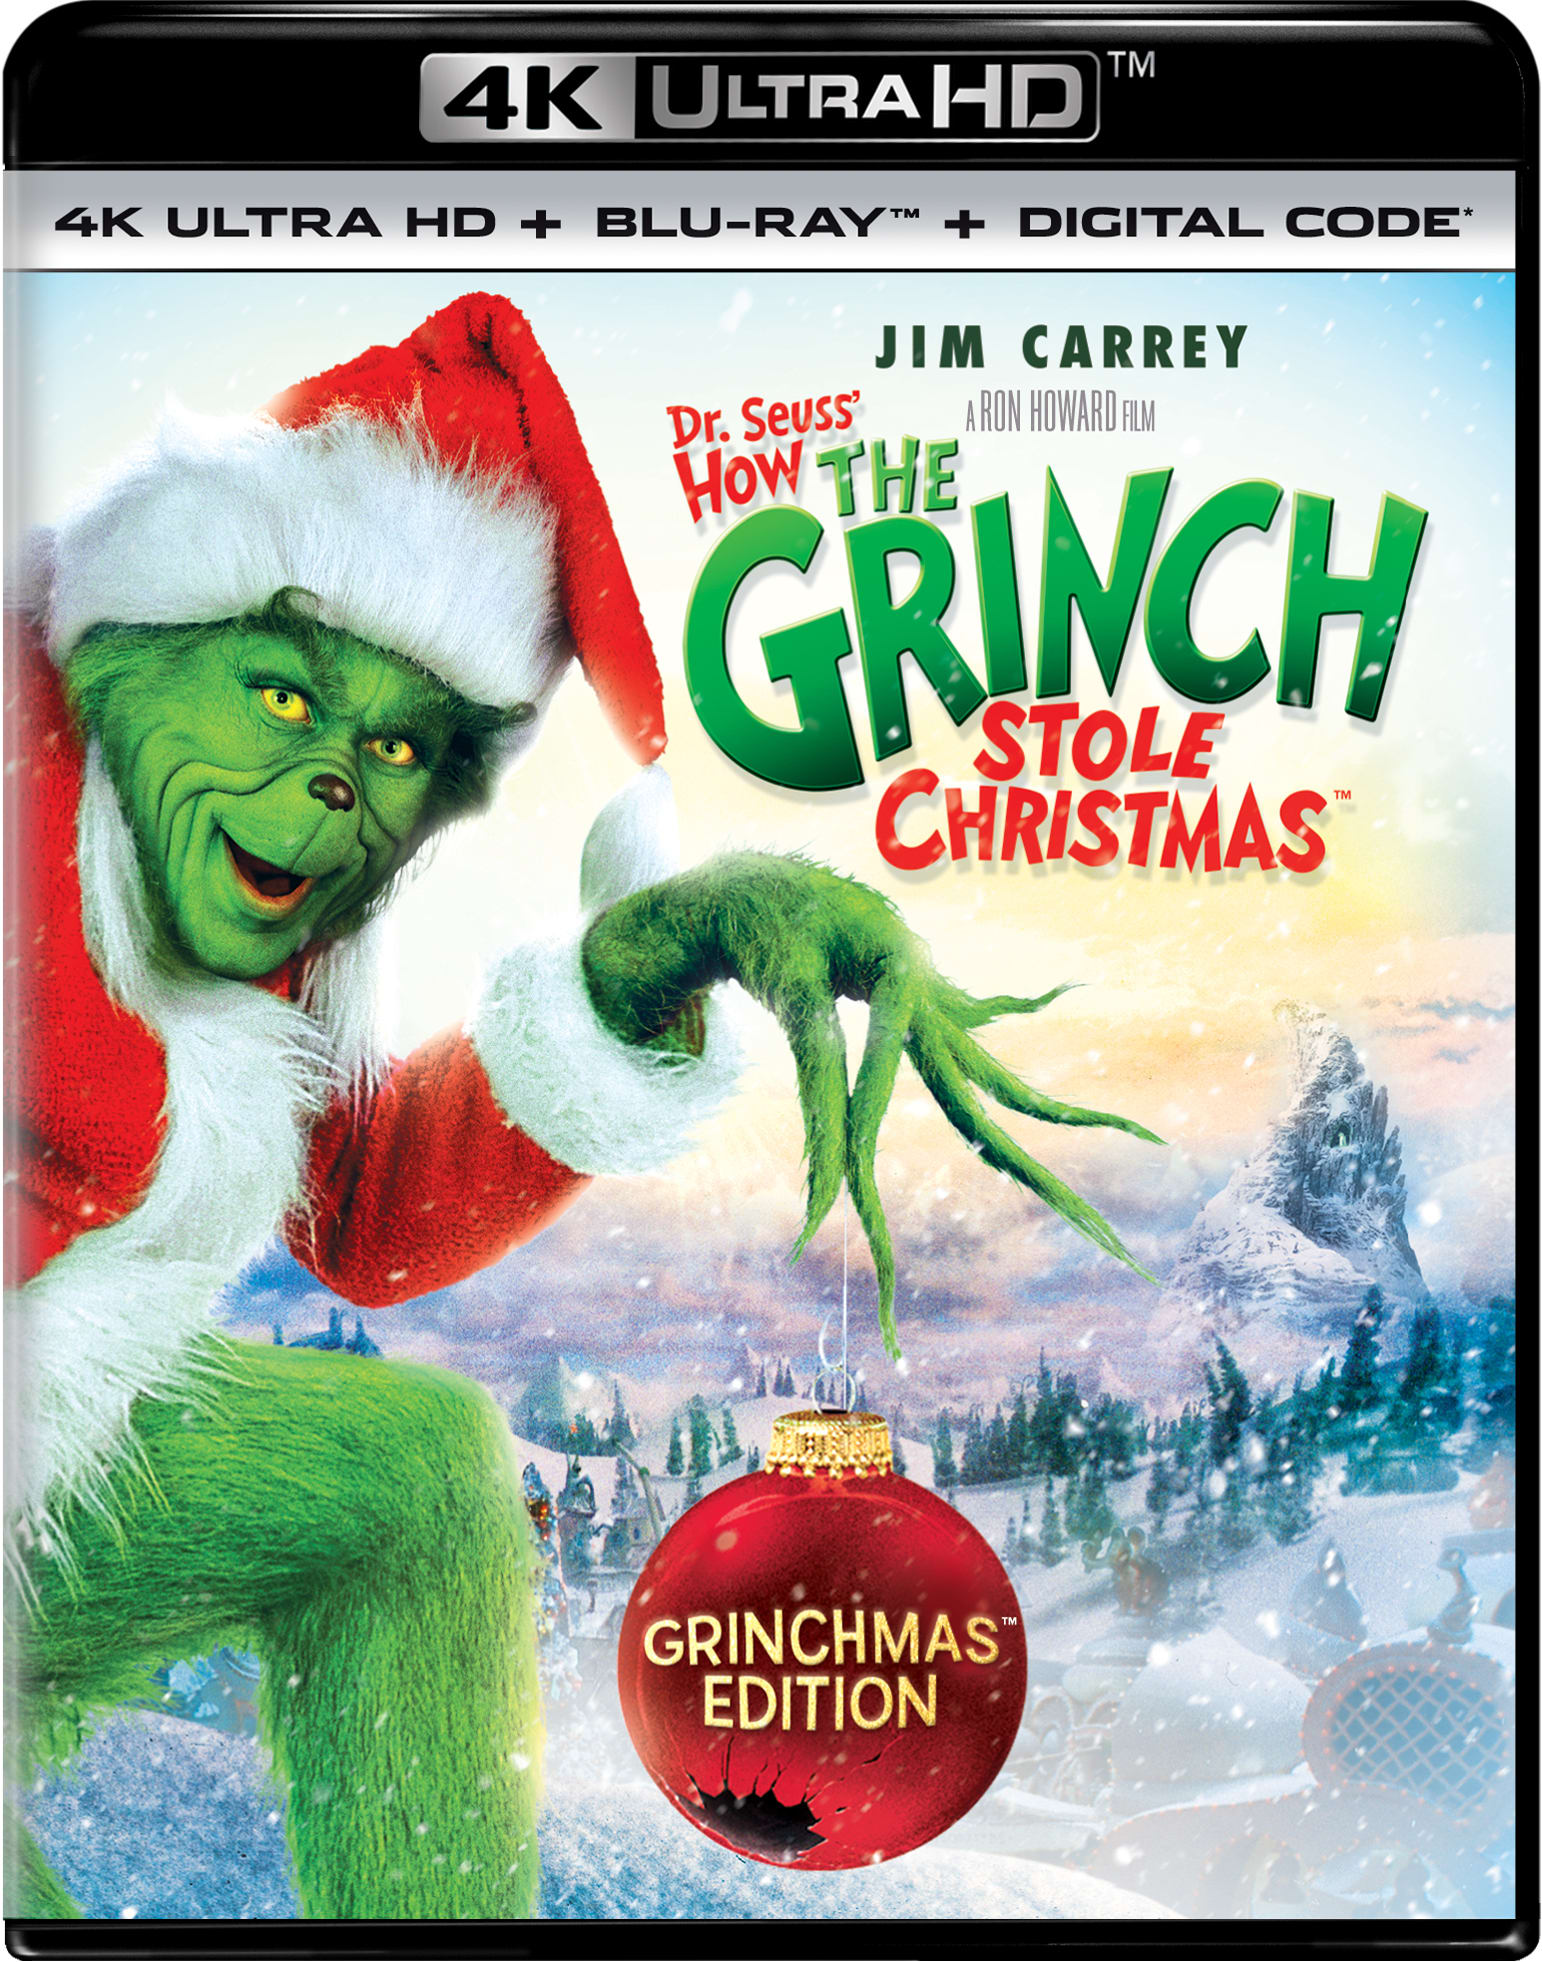 Dr. Seuss' How The Grinch Stole Christmas (Grinchmas Edition - 4K Ultra HD + Digital) [UHD]